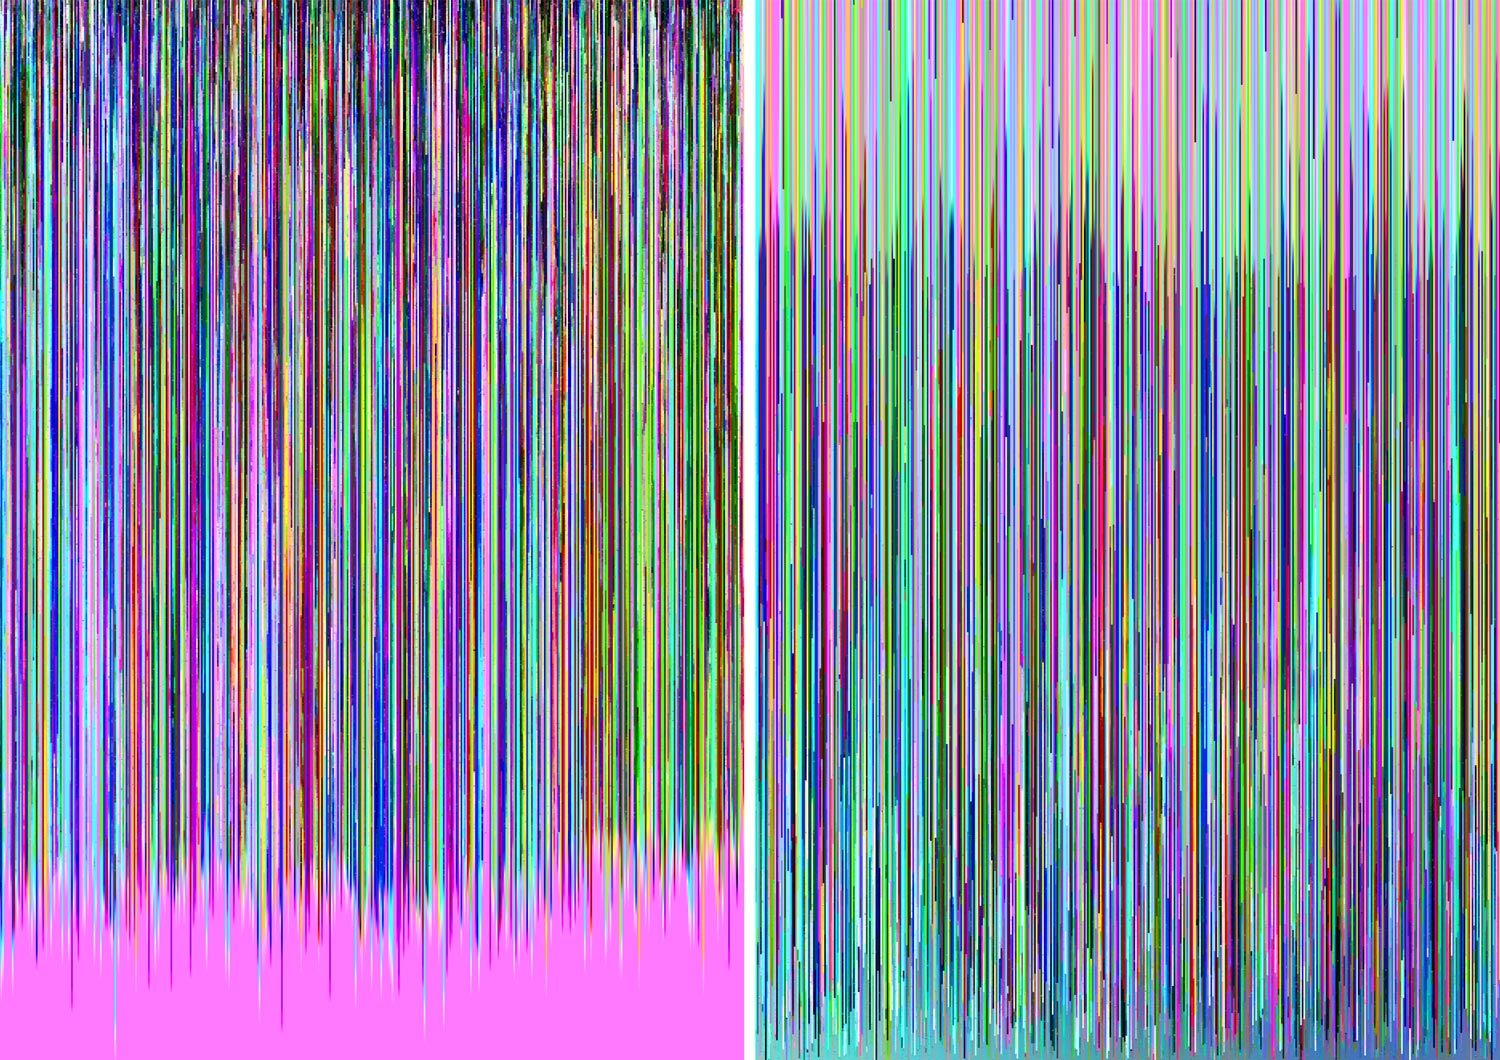 glitch effects example